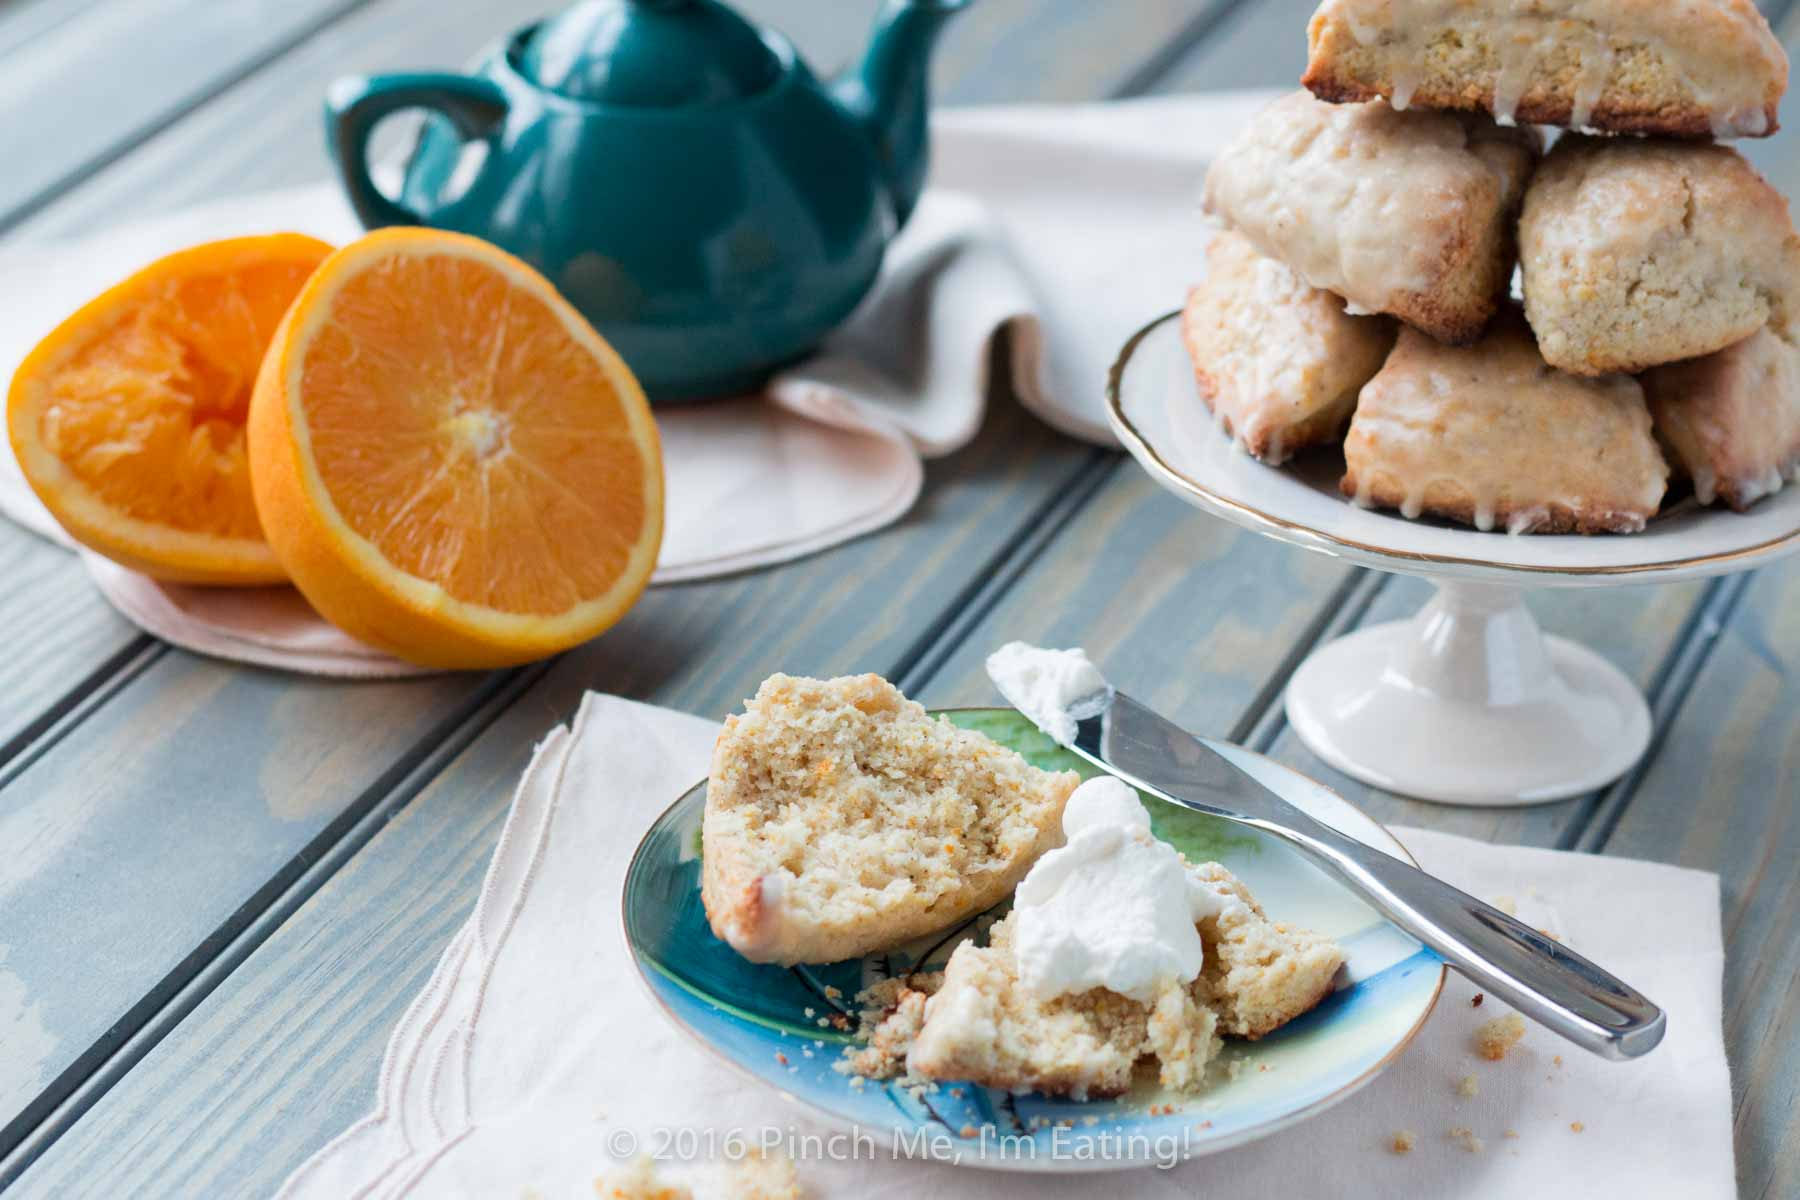 Cardamom And Orange Scones From 'Home Made Winter' Recipe ...